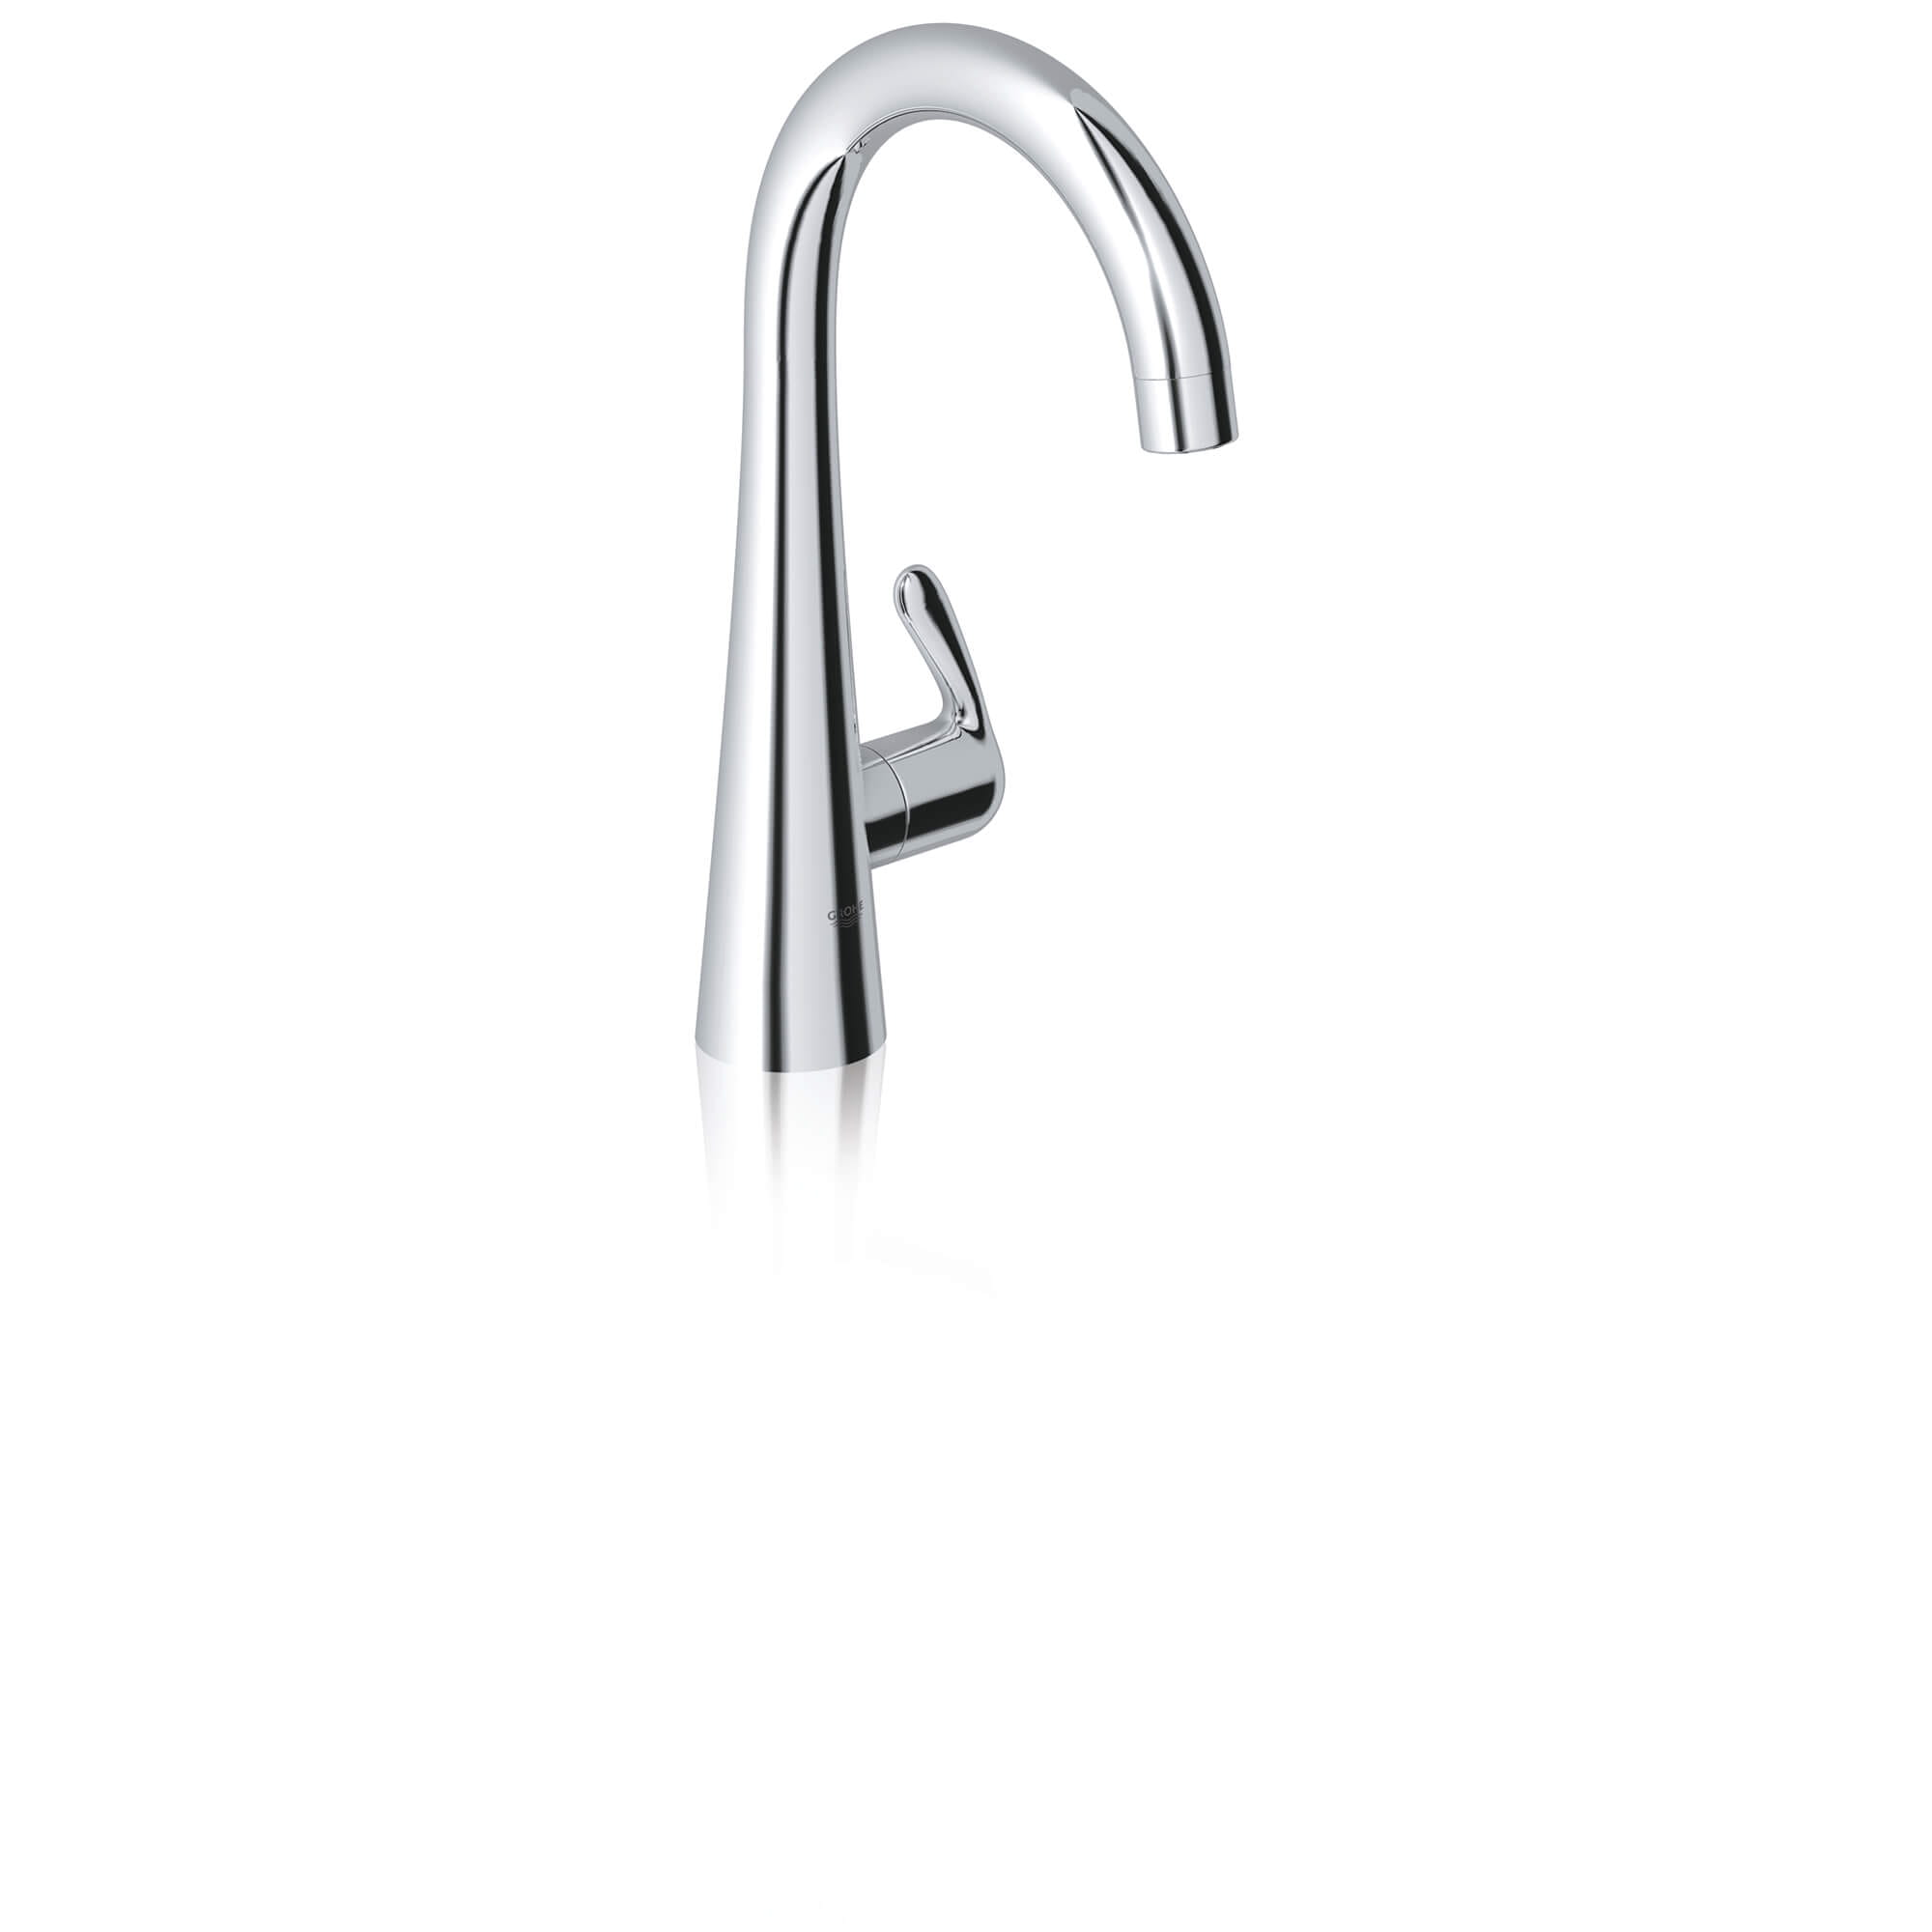 Single Handle Pillar Tap Water Faucet 1 75 Gpm